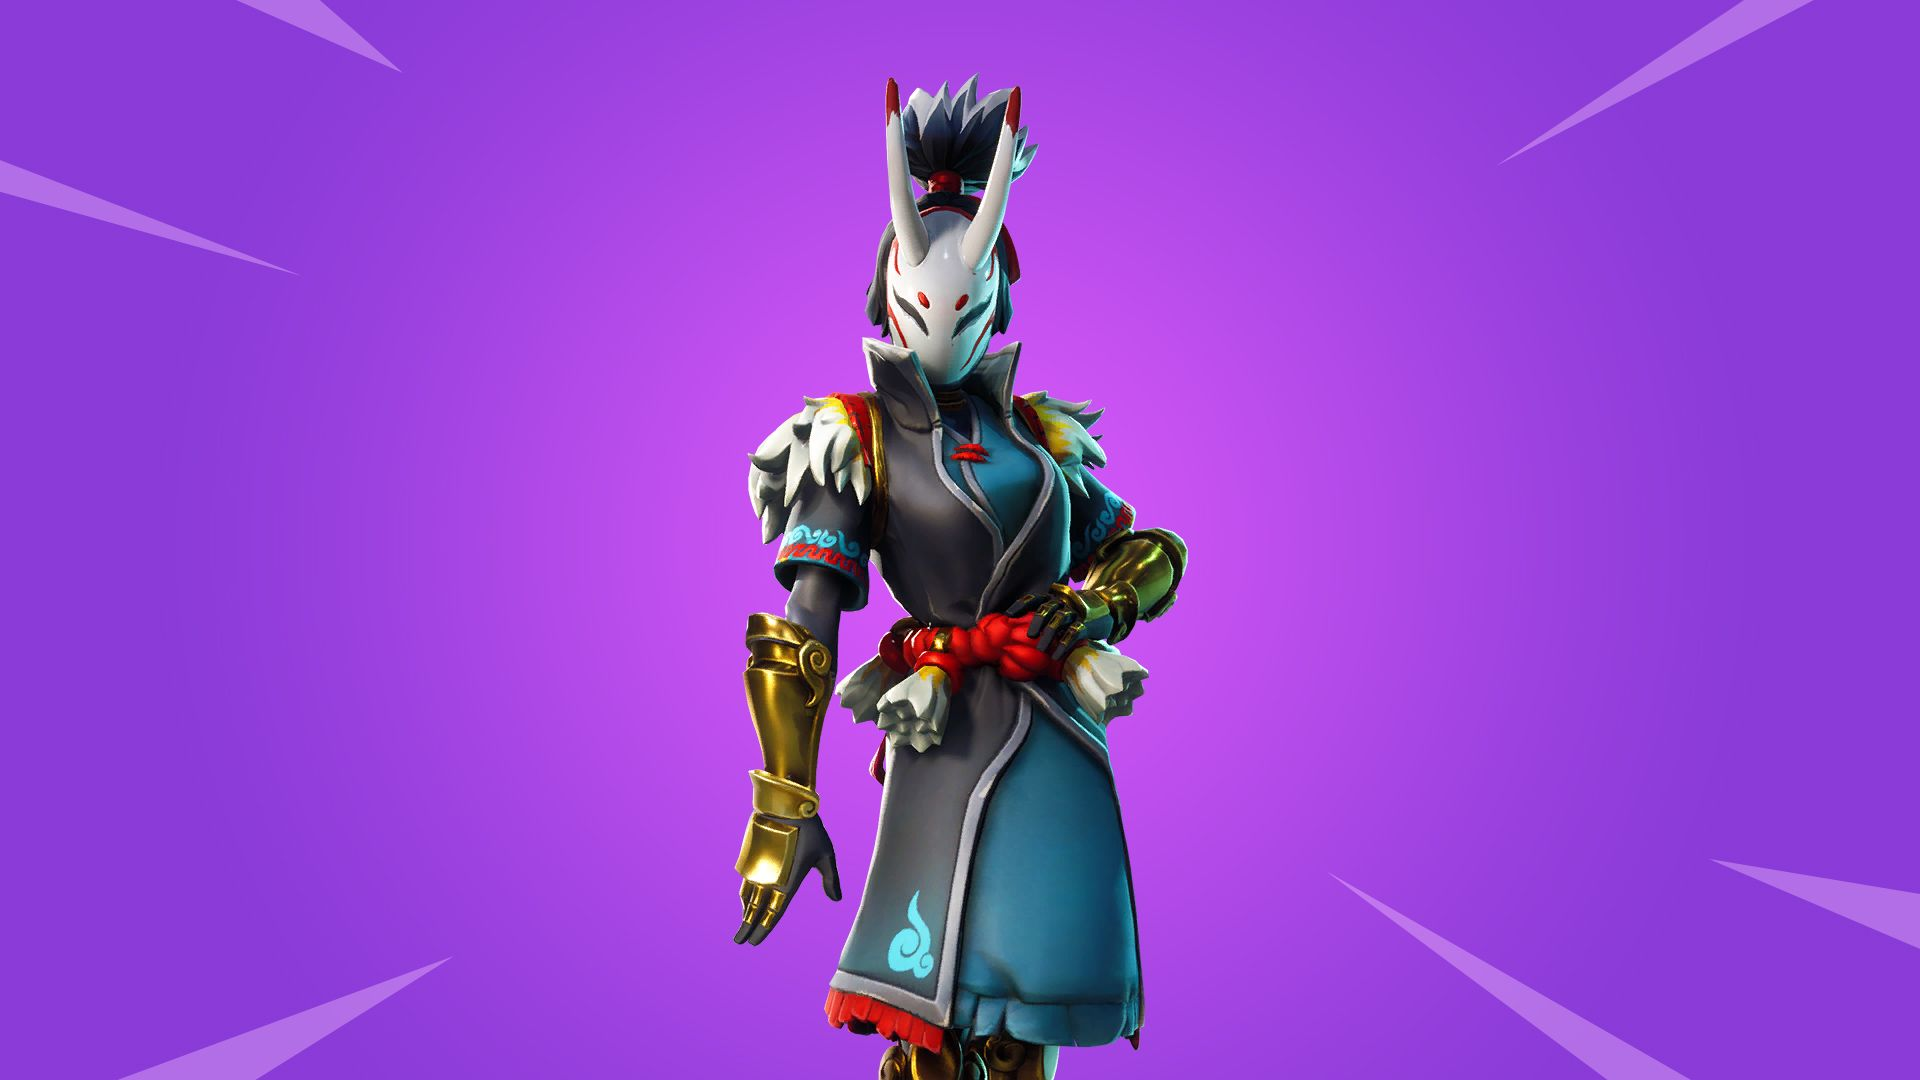 Fortnite Item Shop   November 25th 2018 Fortnite News 1920x1080